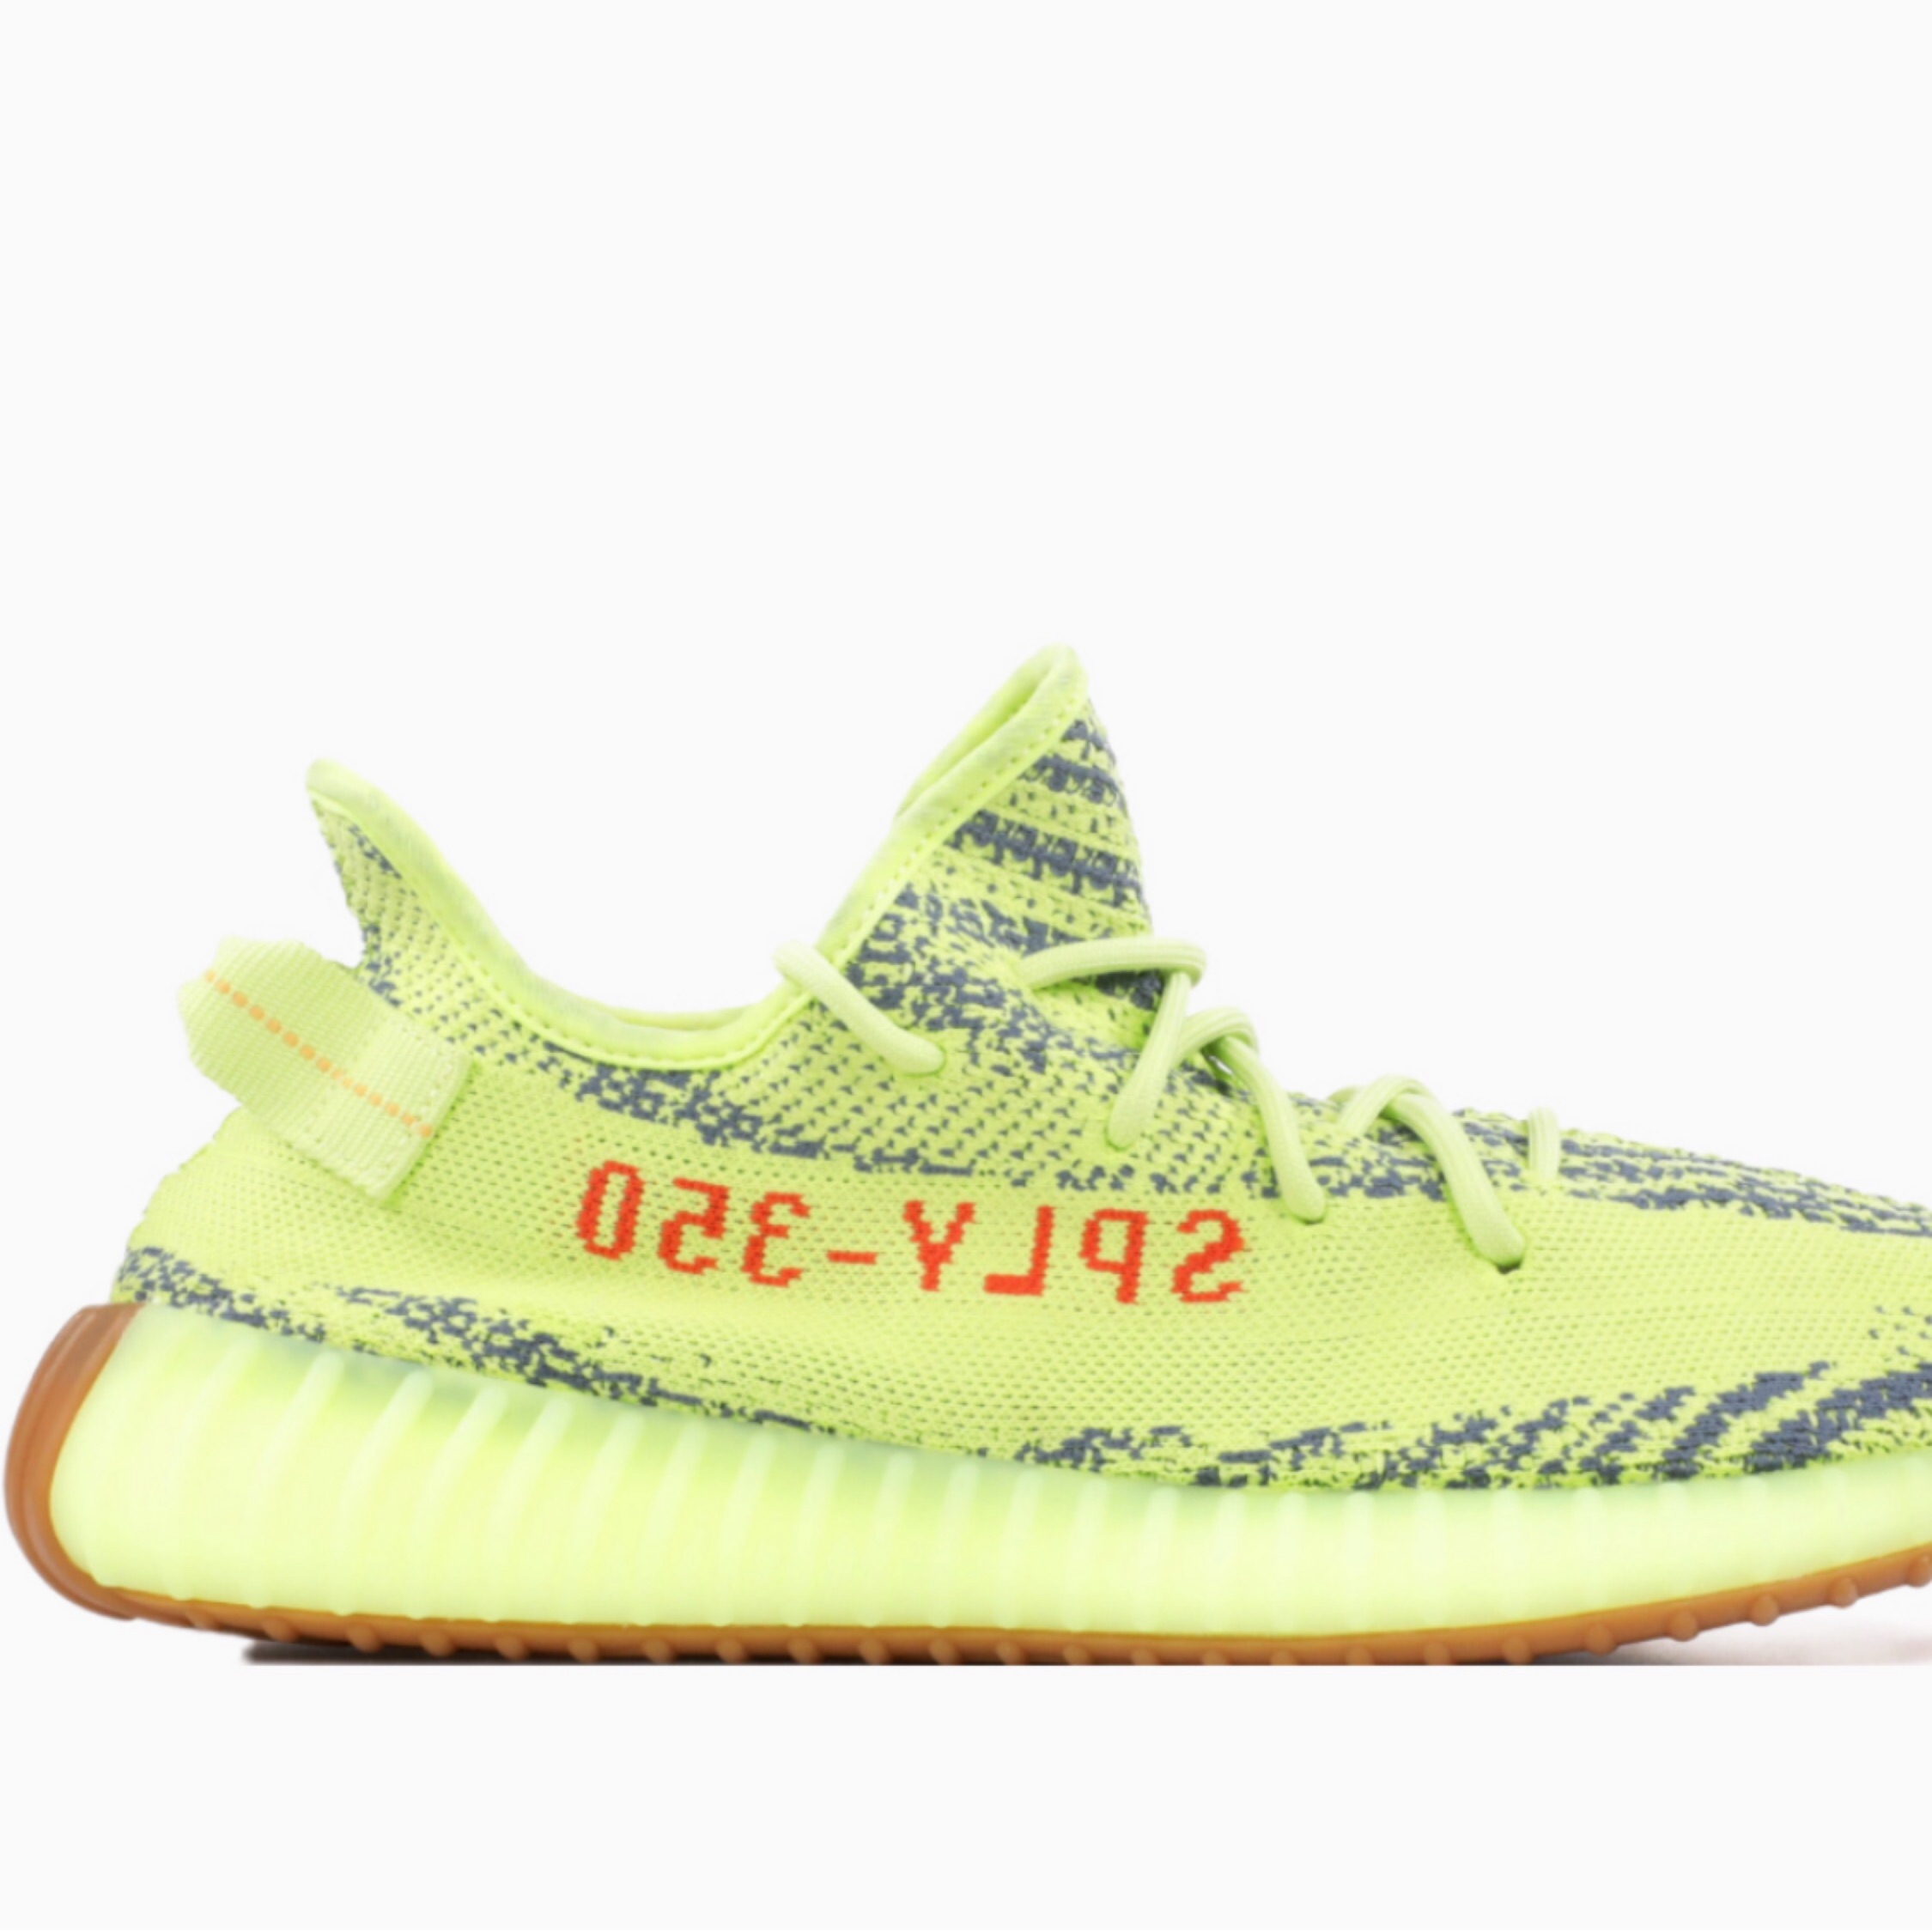 new style 4d3f2 68358 Adidas Yeezy Boost 350 V2 Semi Frozen Yellow